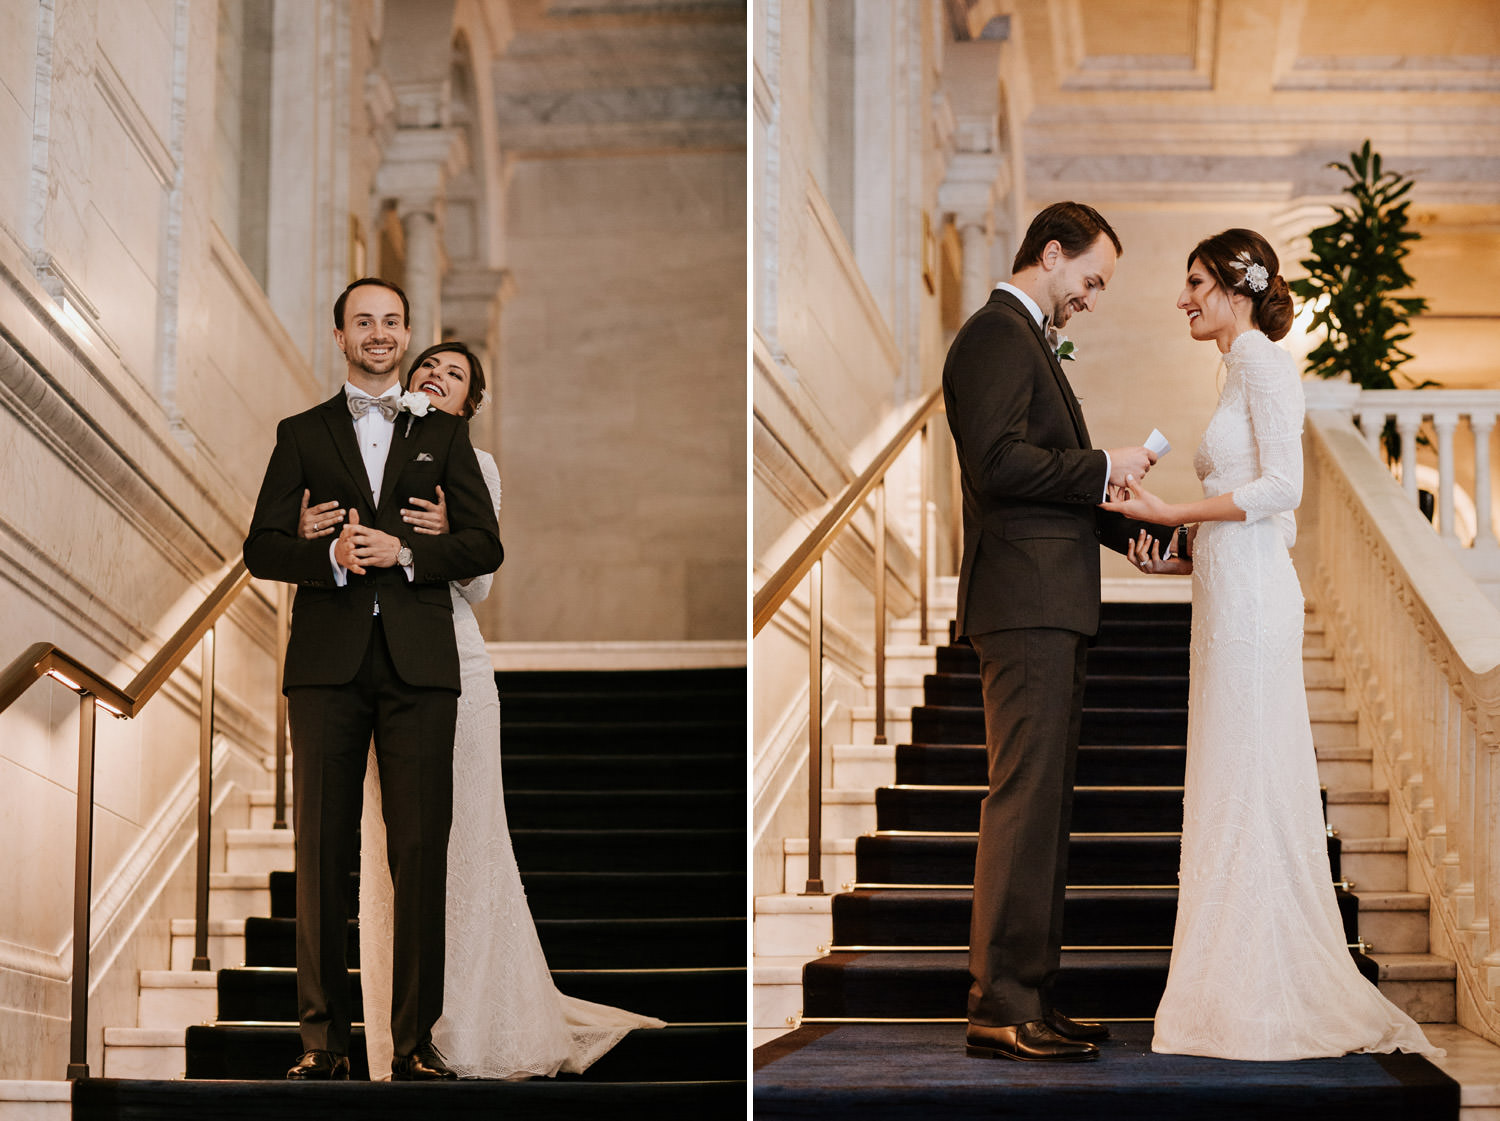 a diptych photograph of the bride and groom embracing during their first look in the gray hotel